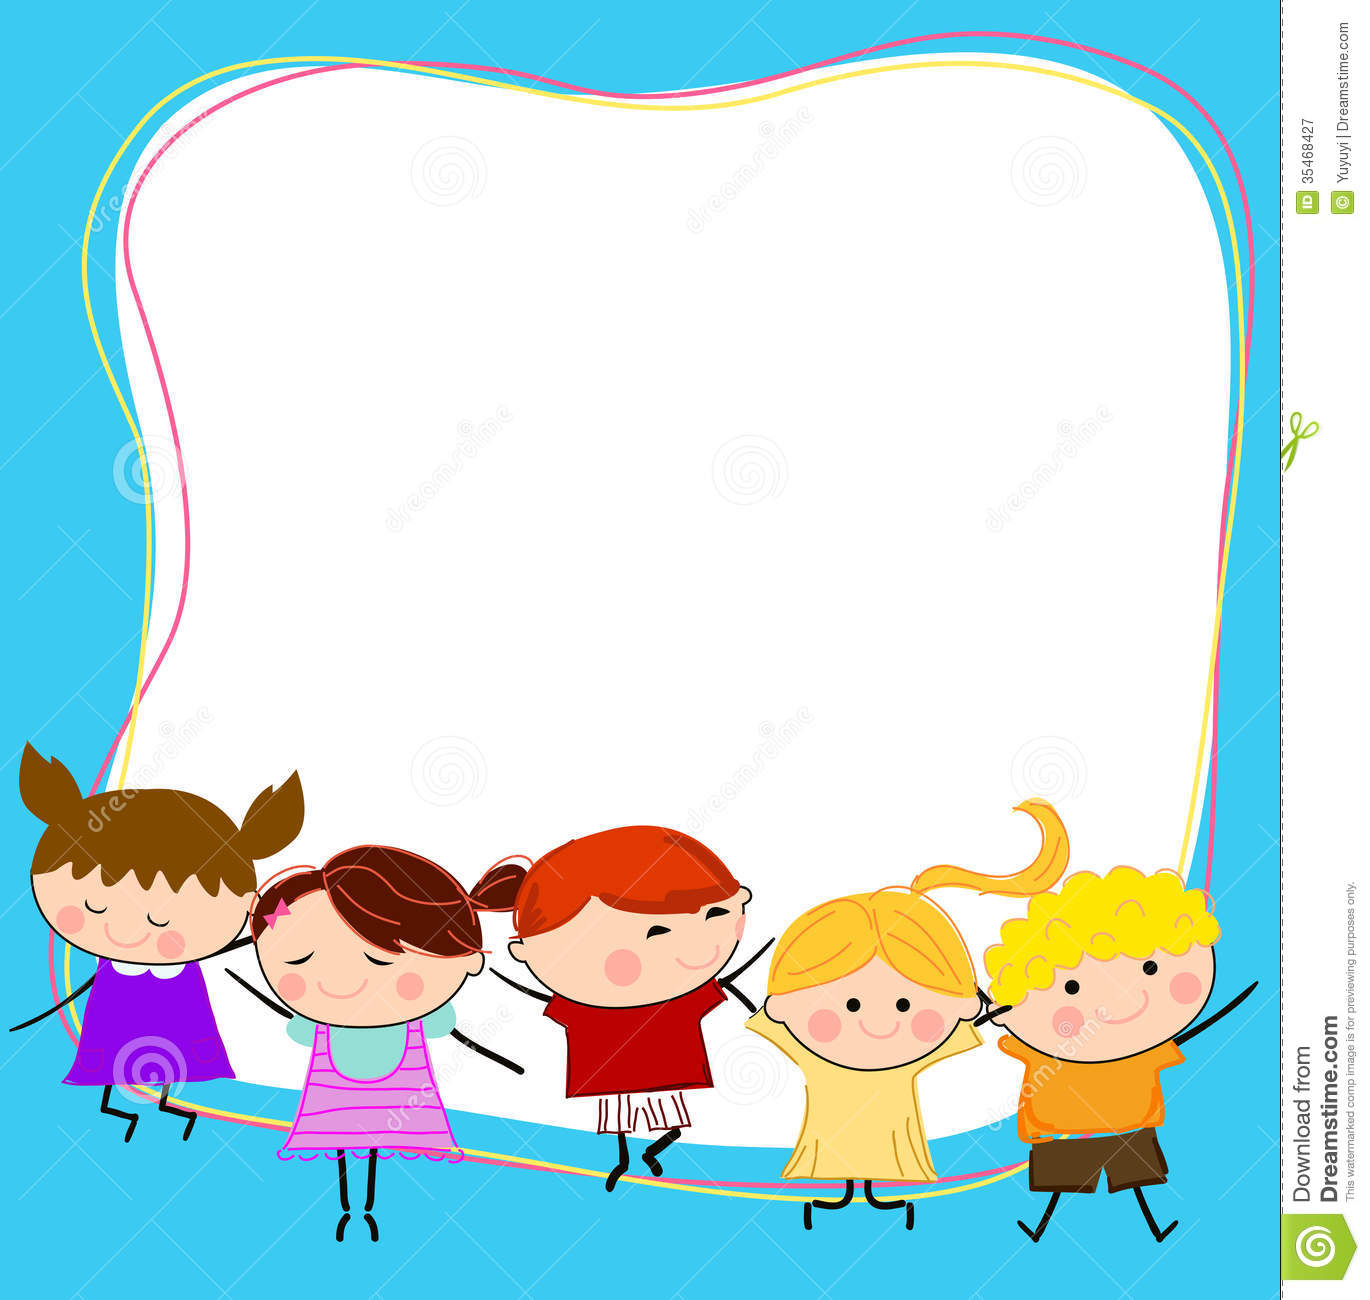 Cute Toddlers Playing Cartoon Wallpaper Group Of Kids Having Fun And Frame Royalty Free Stock